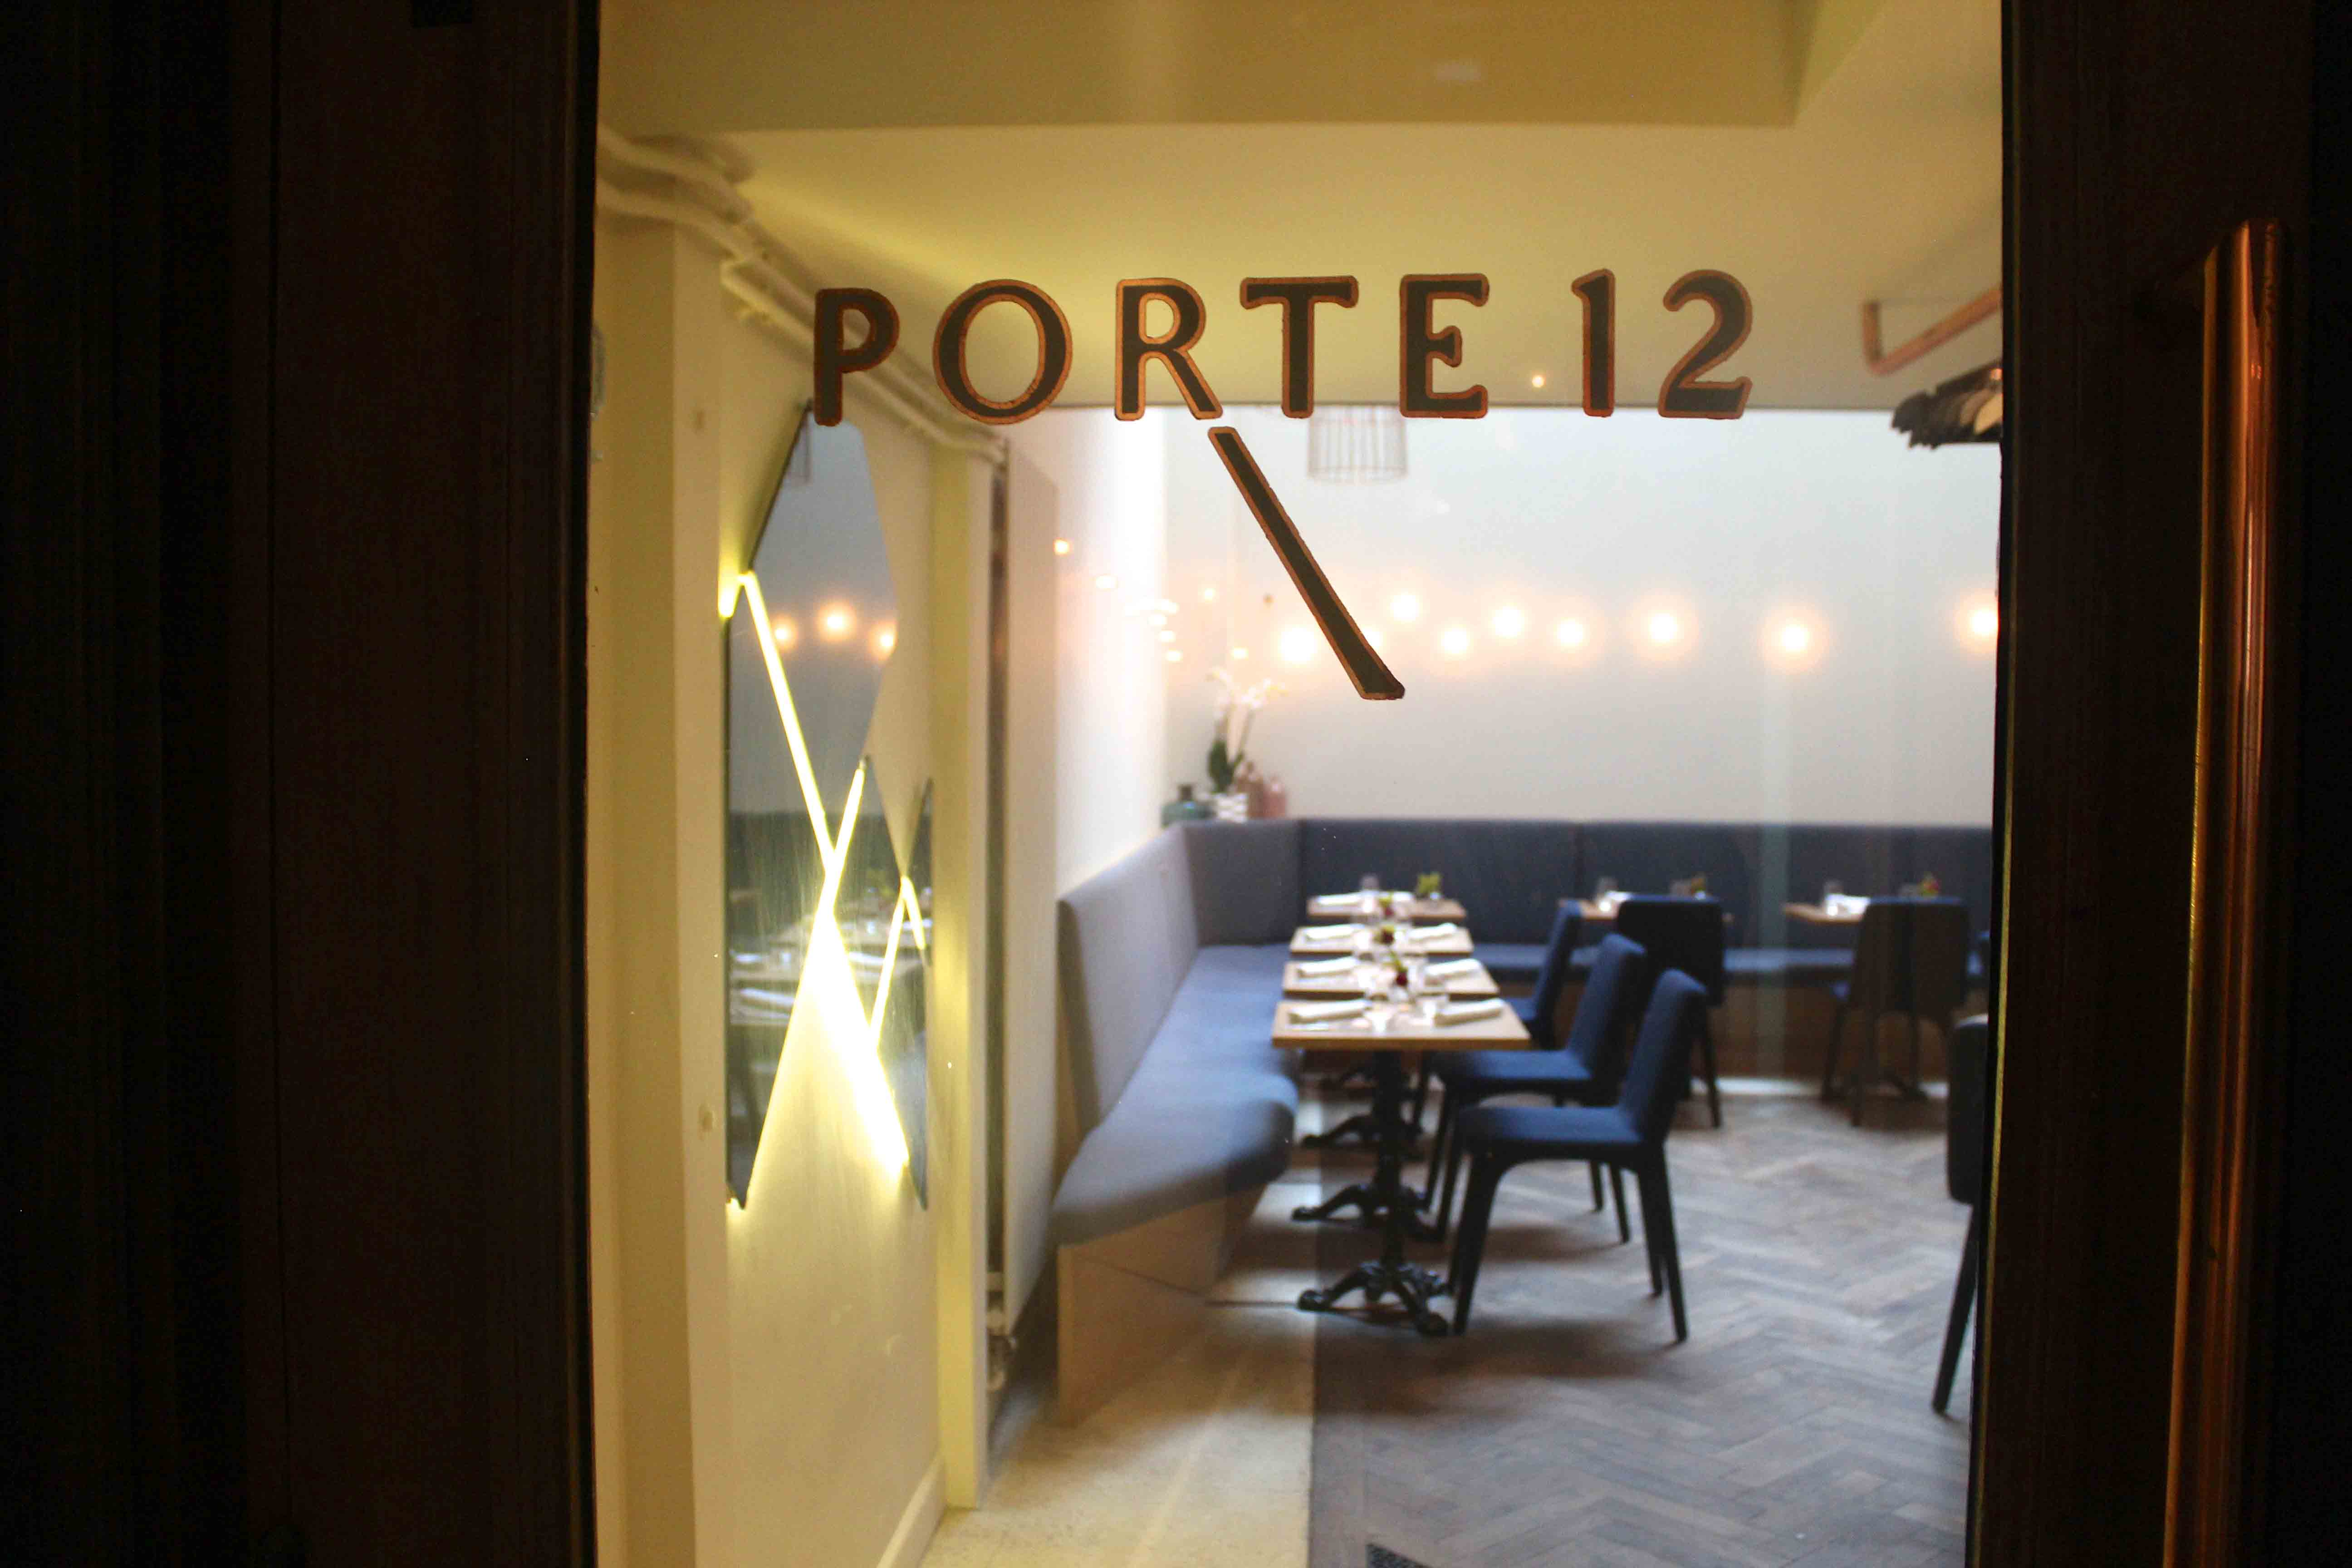 Porte 12 k a n n d i d for Porte 12 restaurant paris